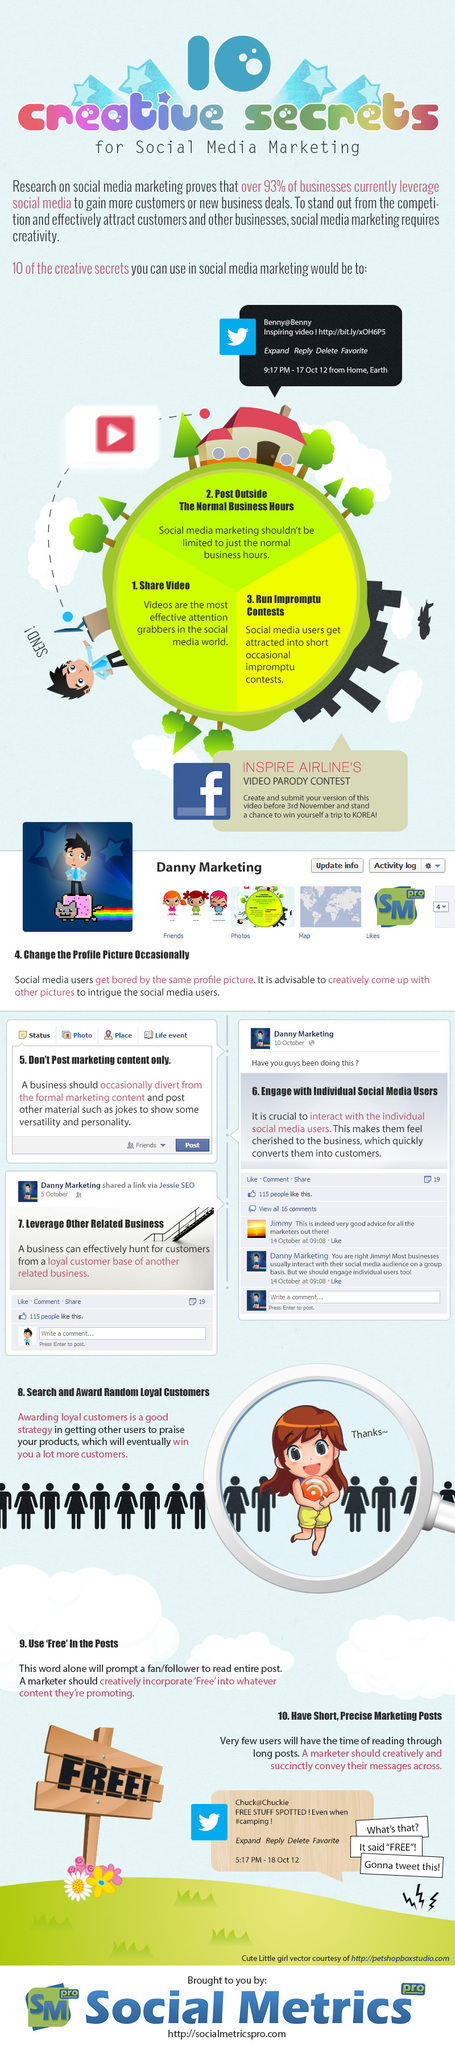 10 Creative Secrets For Social Media Marketing [Infographic] | Marketing Revolution | Scoop.it